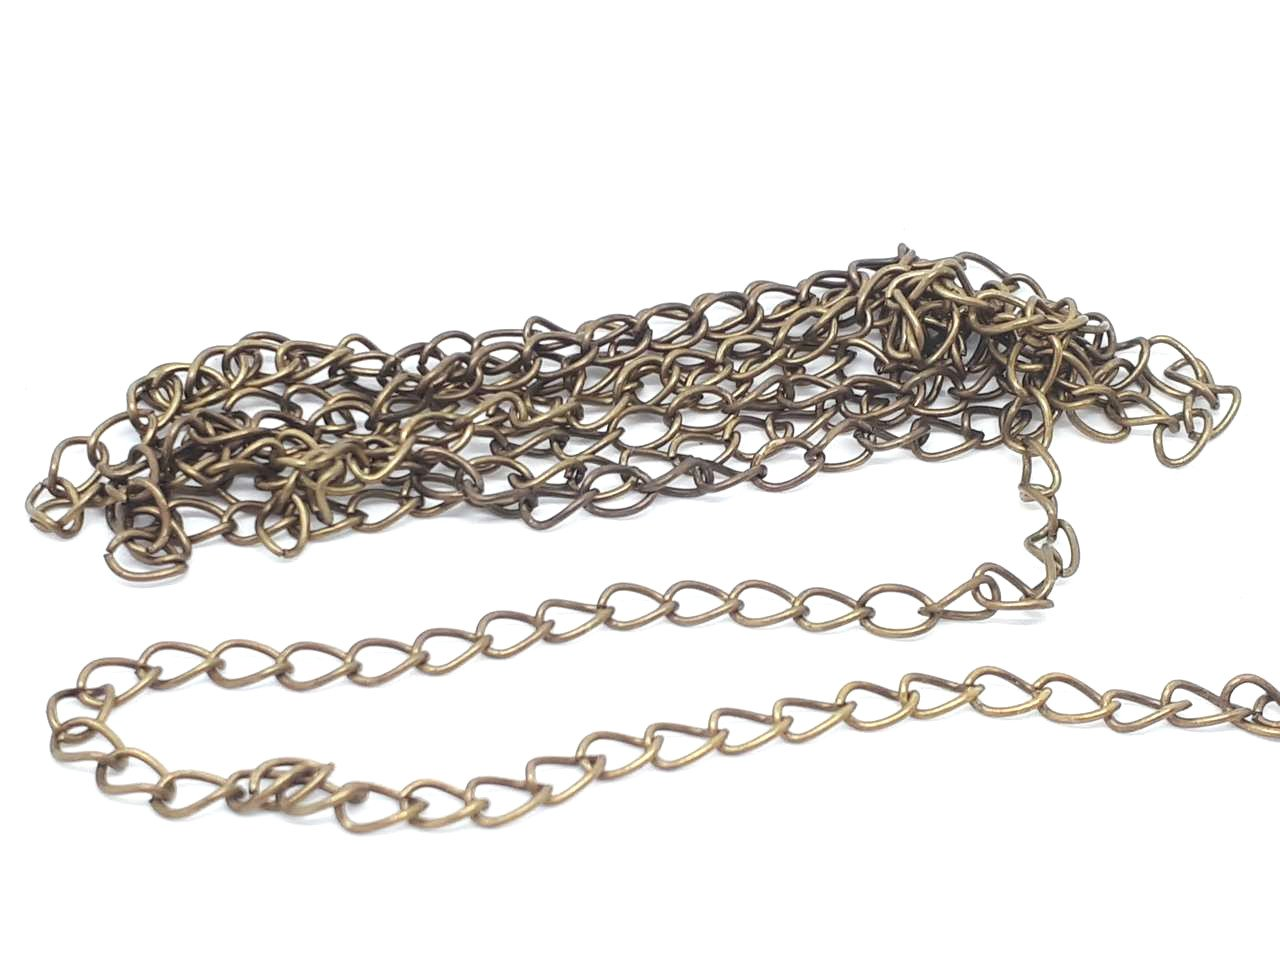 2 meters CHAIN SILVER 1,5 x 2 mm VERY FINE JEWELRY CREATION BEADS